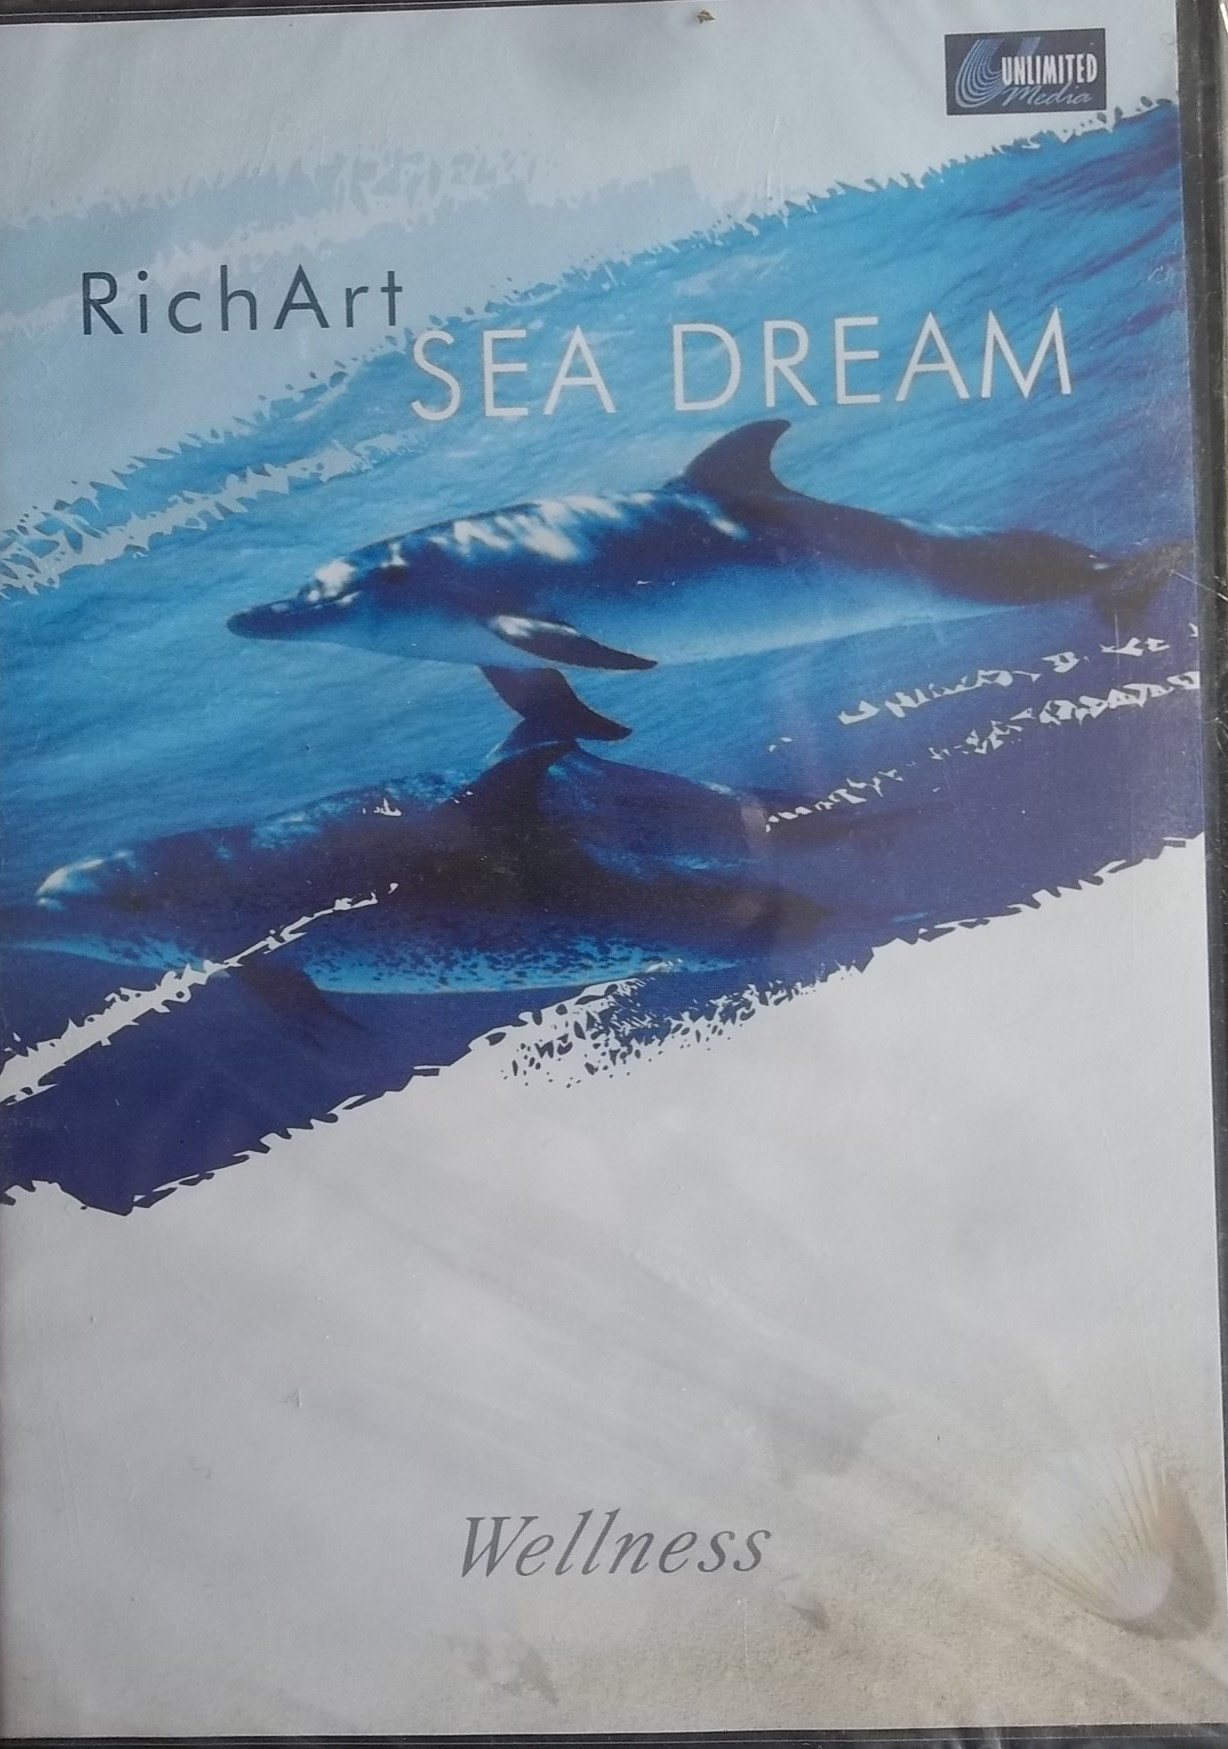 RichArt Sea Dream - DVD